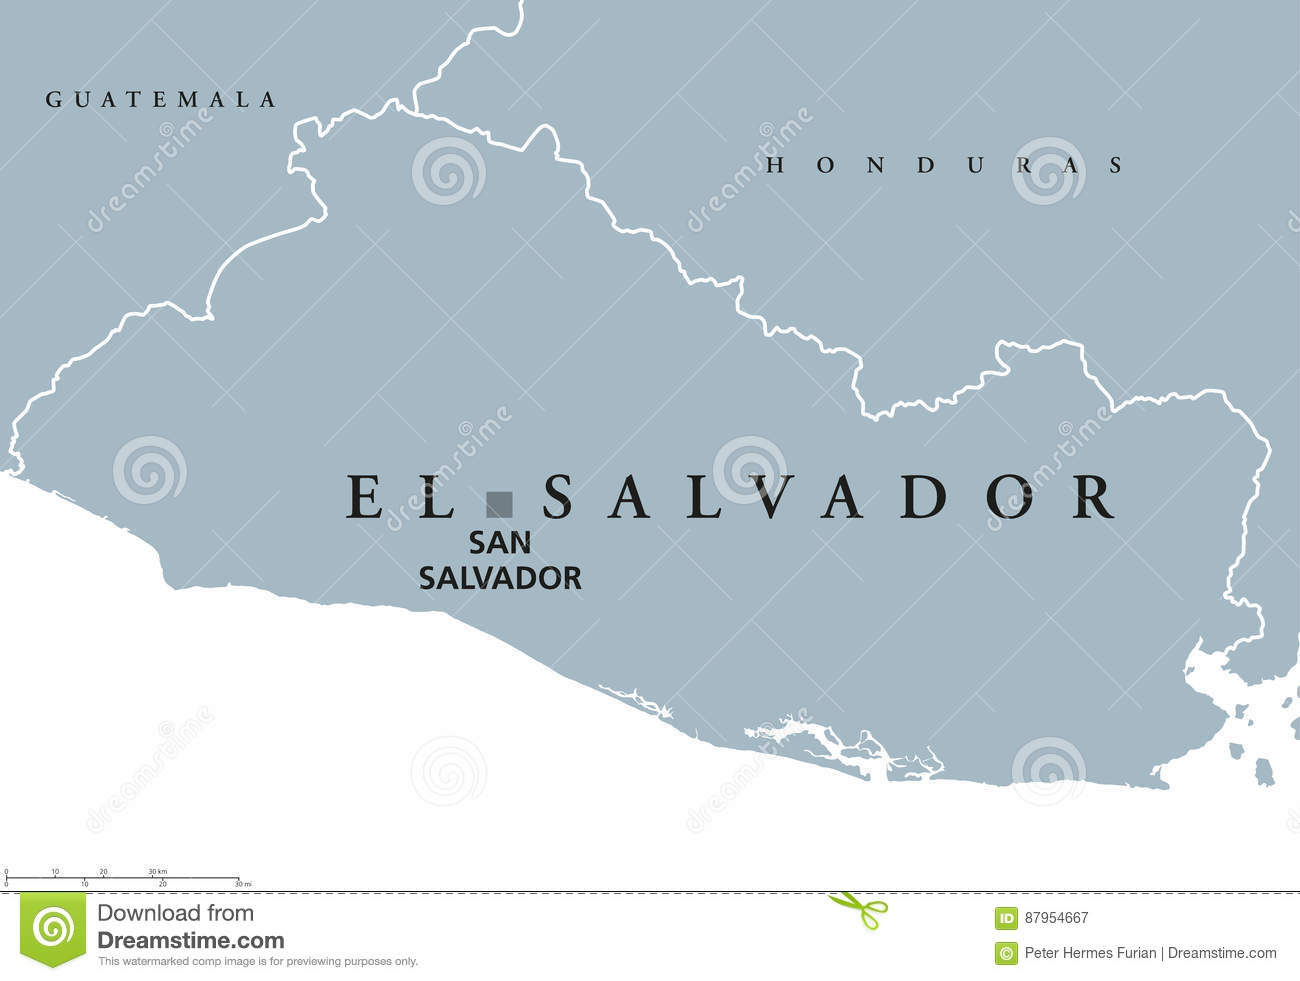 El Salvador political map stock vector. Illustration of ... on map of south america, el salvador south america, best places to visit in central america, is mexico part of central america, map of us and central america, map of united states and puerto rico, el salvador in north america, national geography central america, map of central america states, which waterways border central america, drought in central america, map of gangs in san salvador, map of costa rica birding, map of caribbean central america, map of usa and puerto rico, map with capitals of the caribbean islands, map from el salvador, blank outline map of central america, coastal south america, map of mexico,